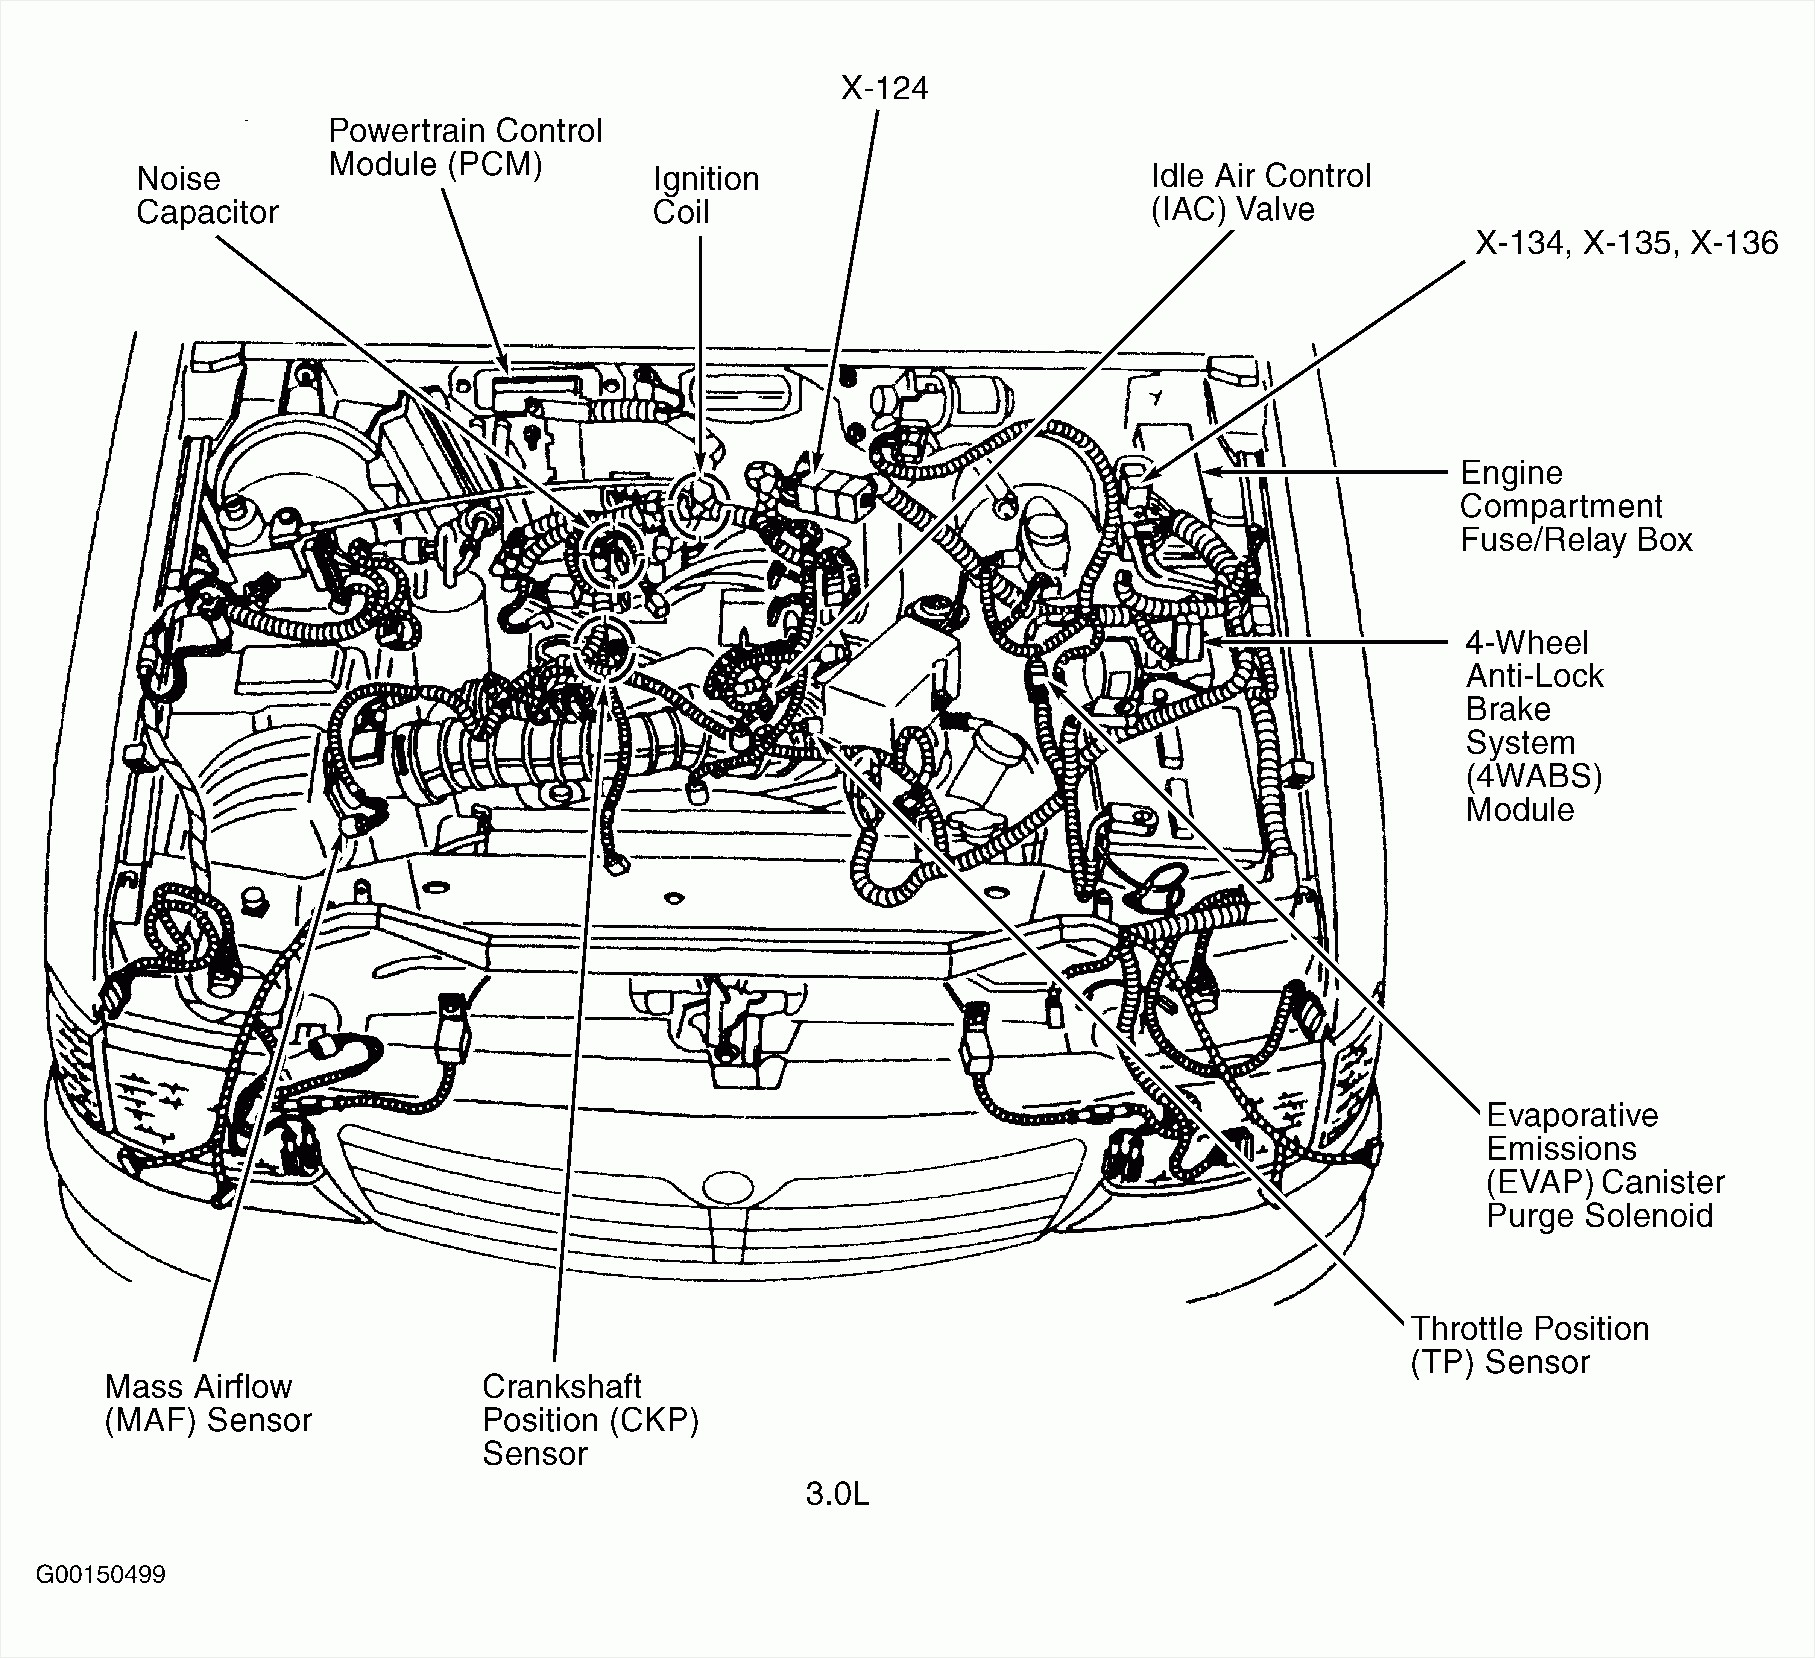 2000 Dodge Grand Caravan Engine Diagram Wiring Library Sel 3 3l Schematics Diagrams U2022 Rh Seniorlivinguniversity Co